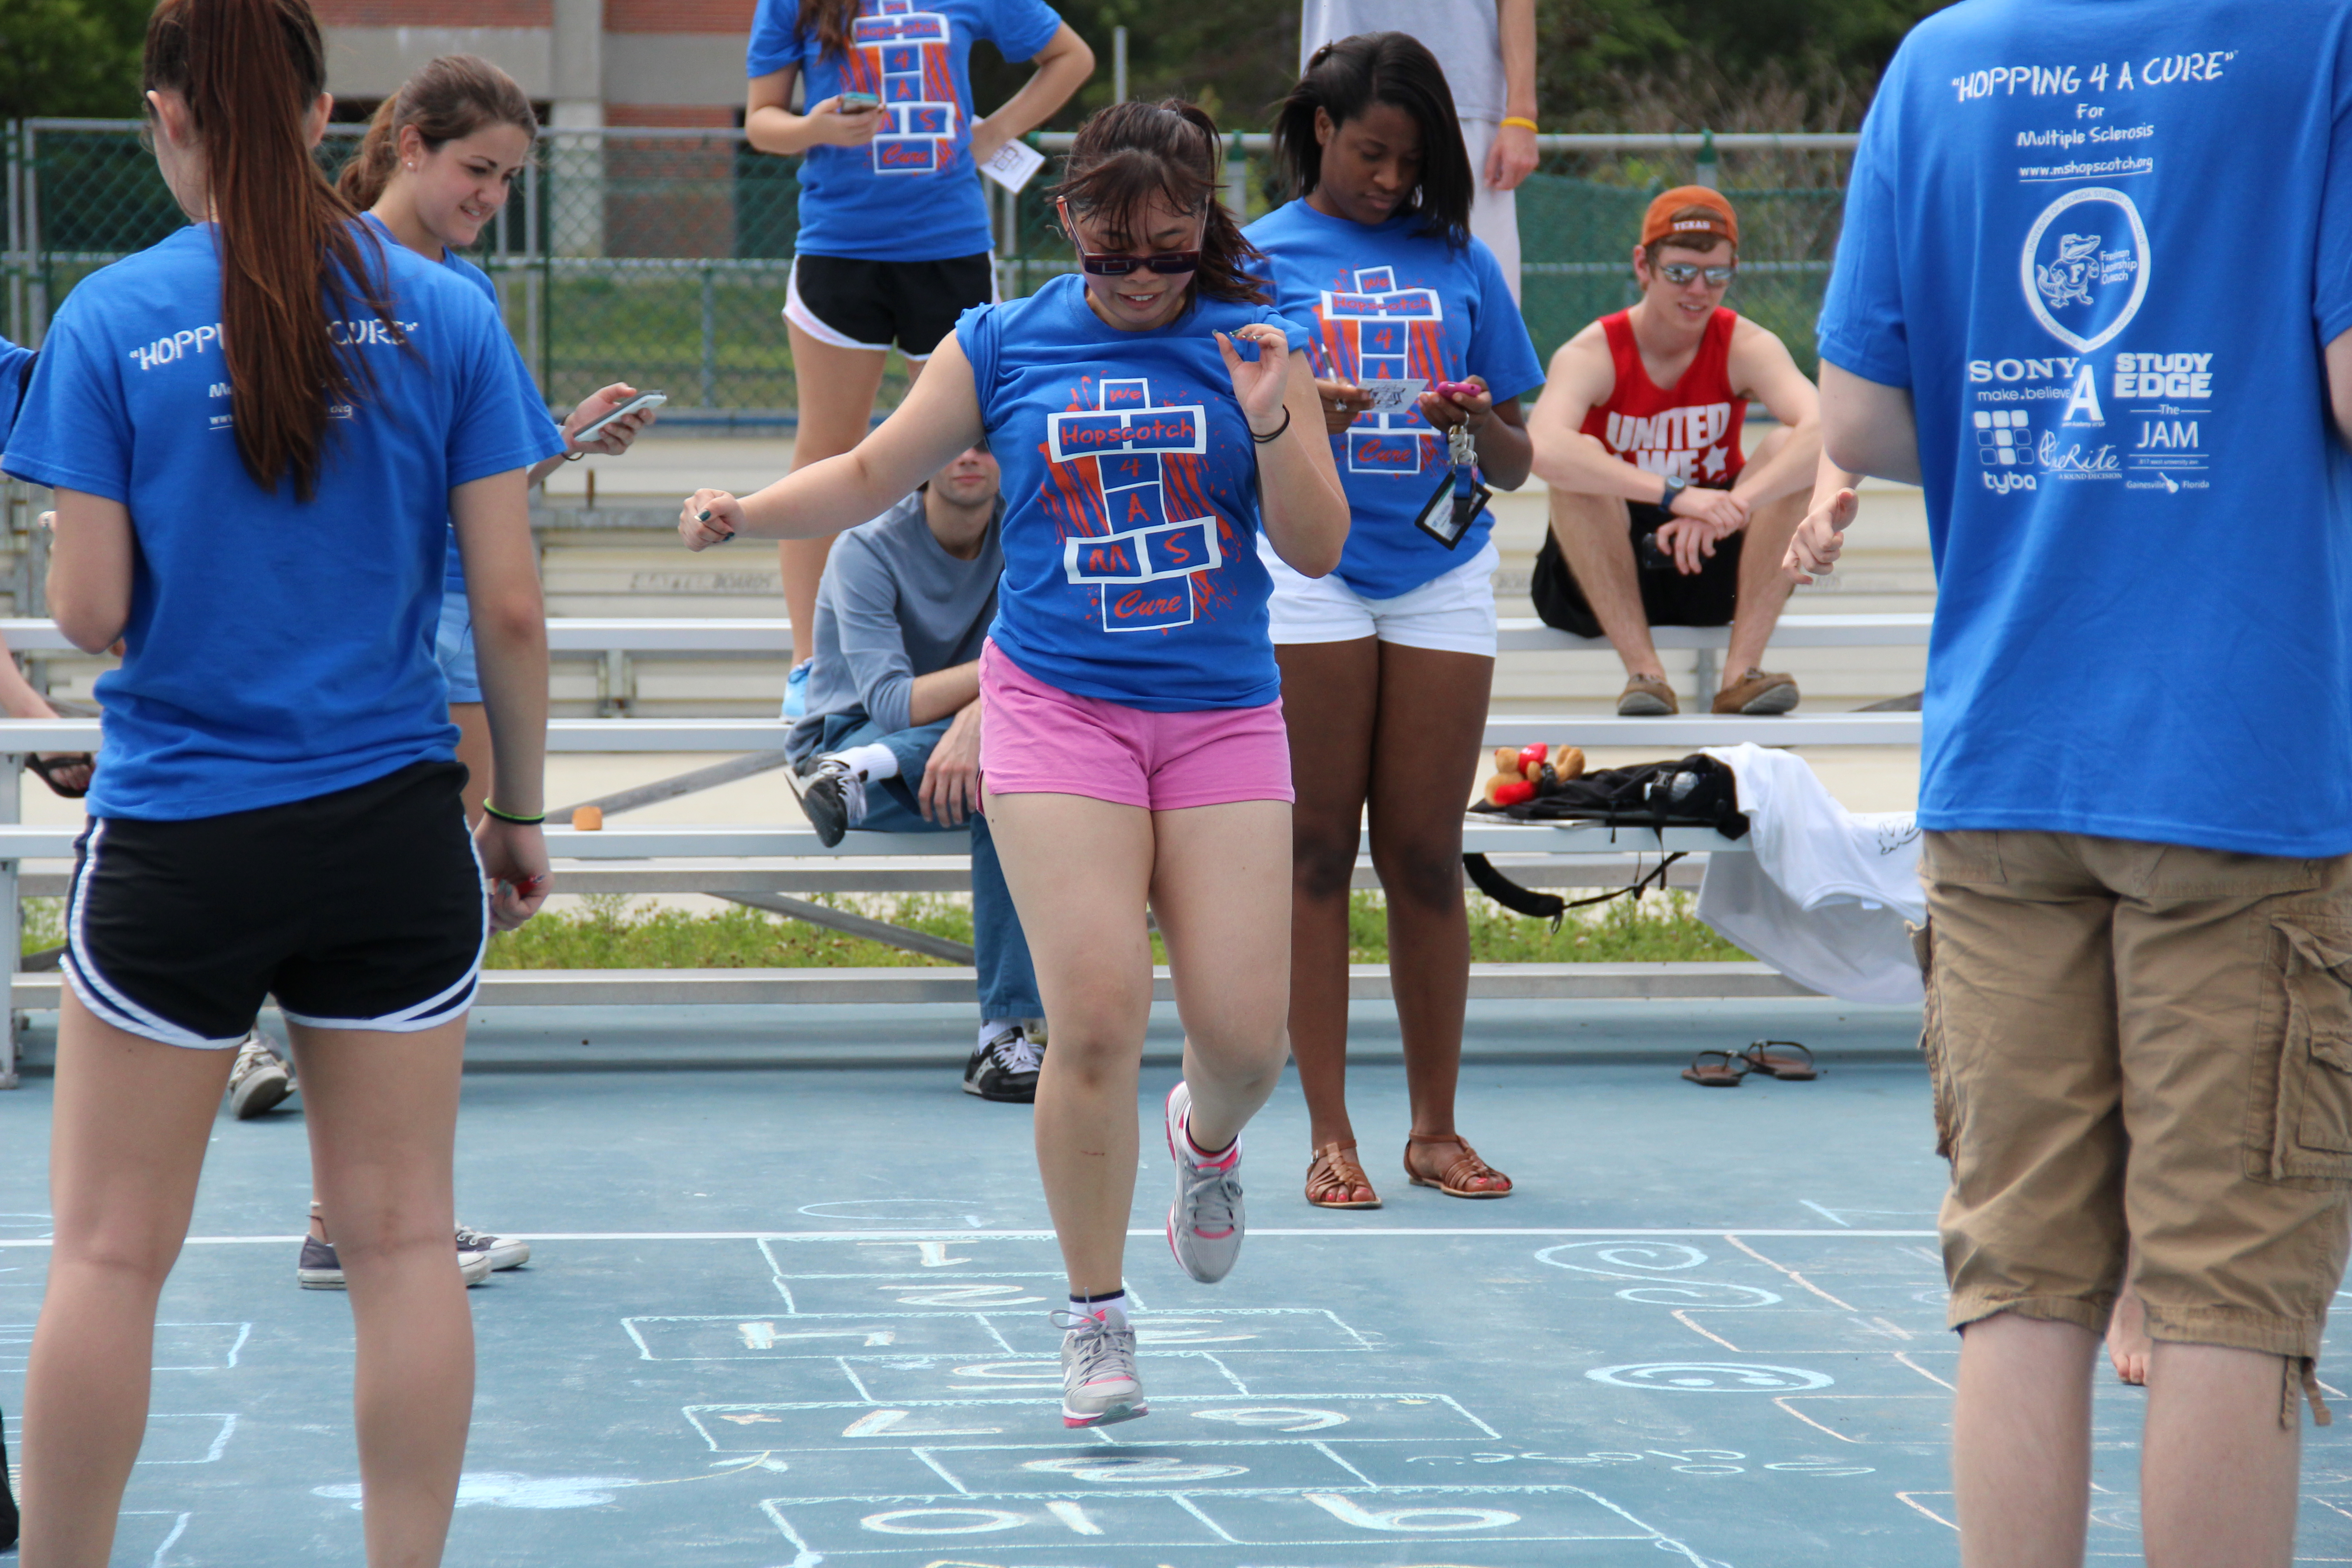 Hopping 4 A Cure Endurance Hopscotch